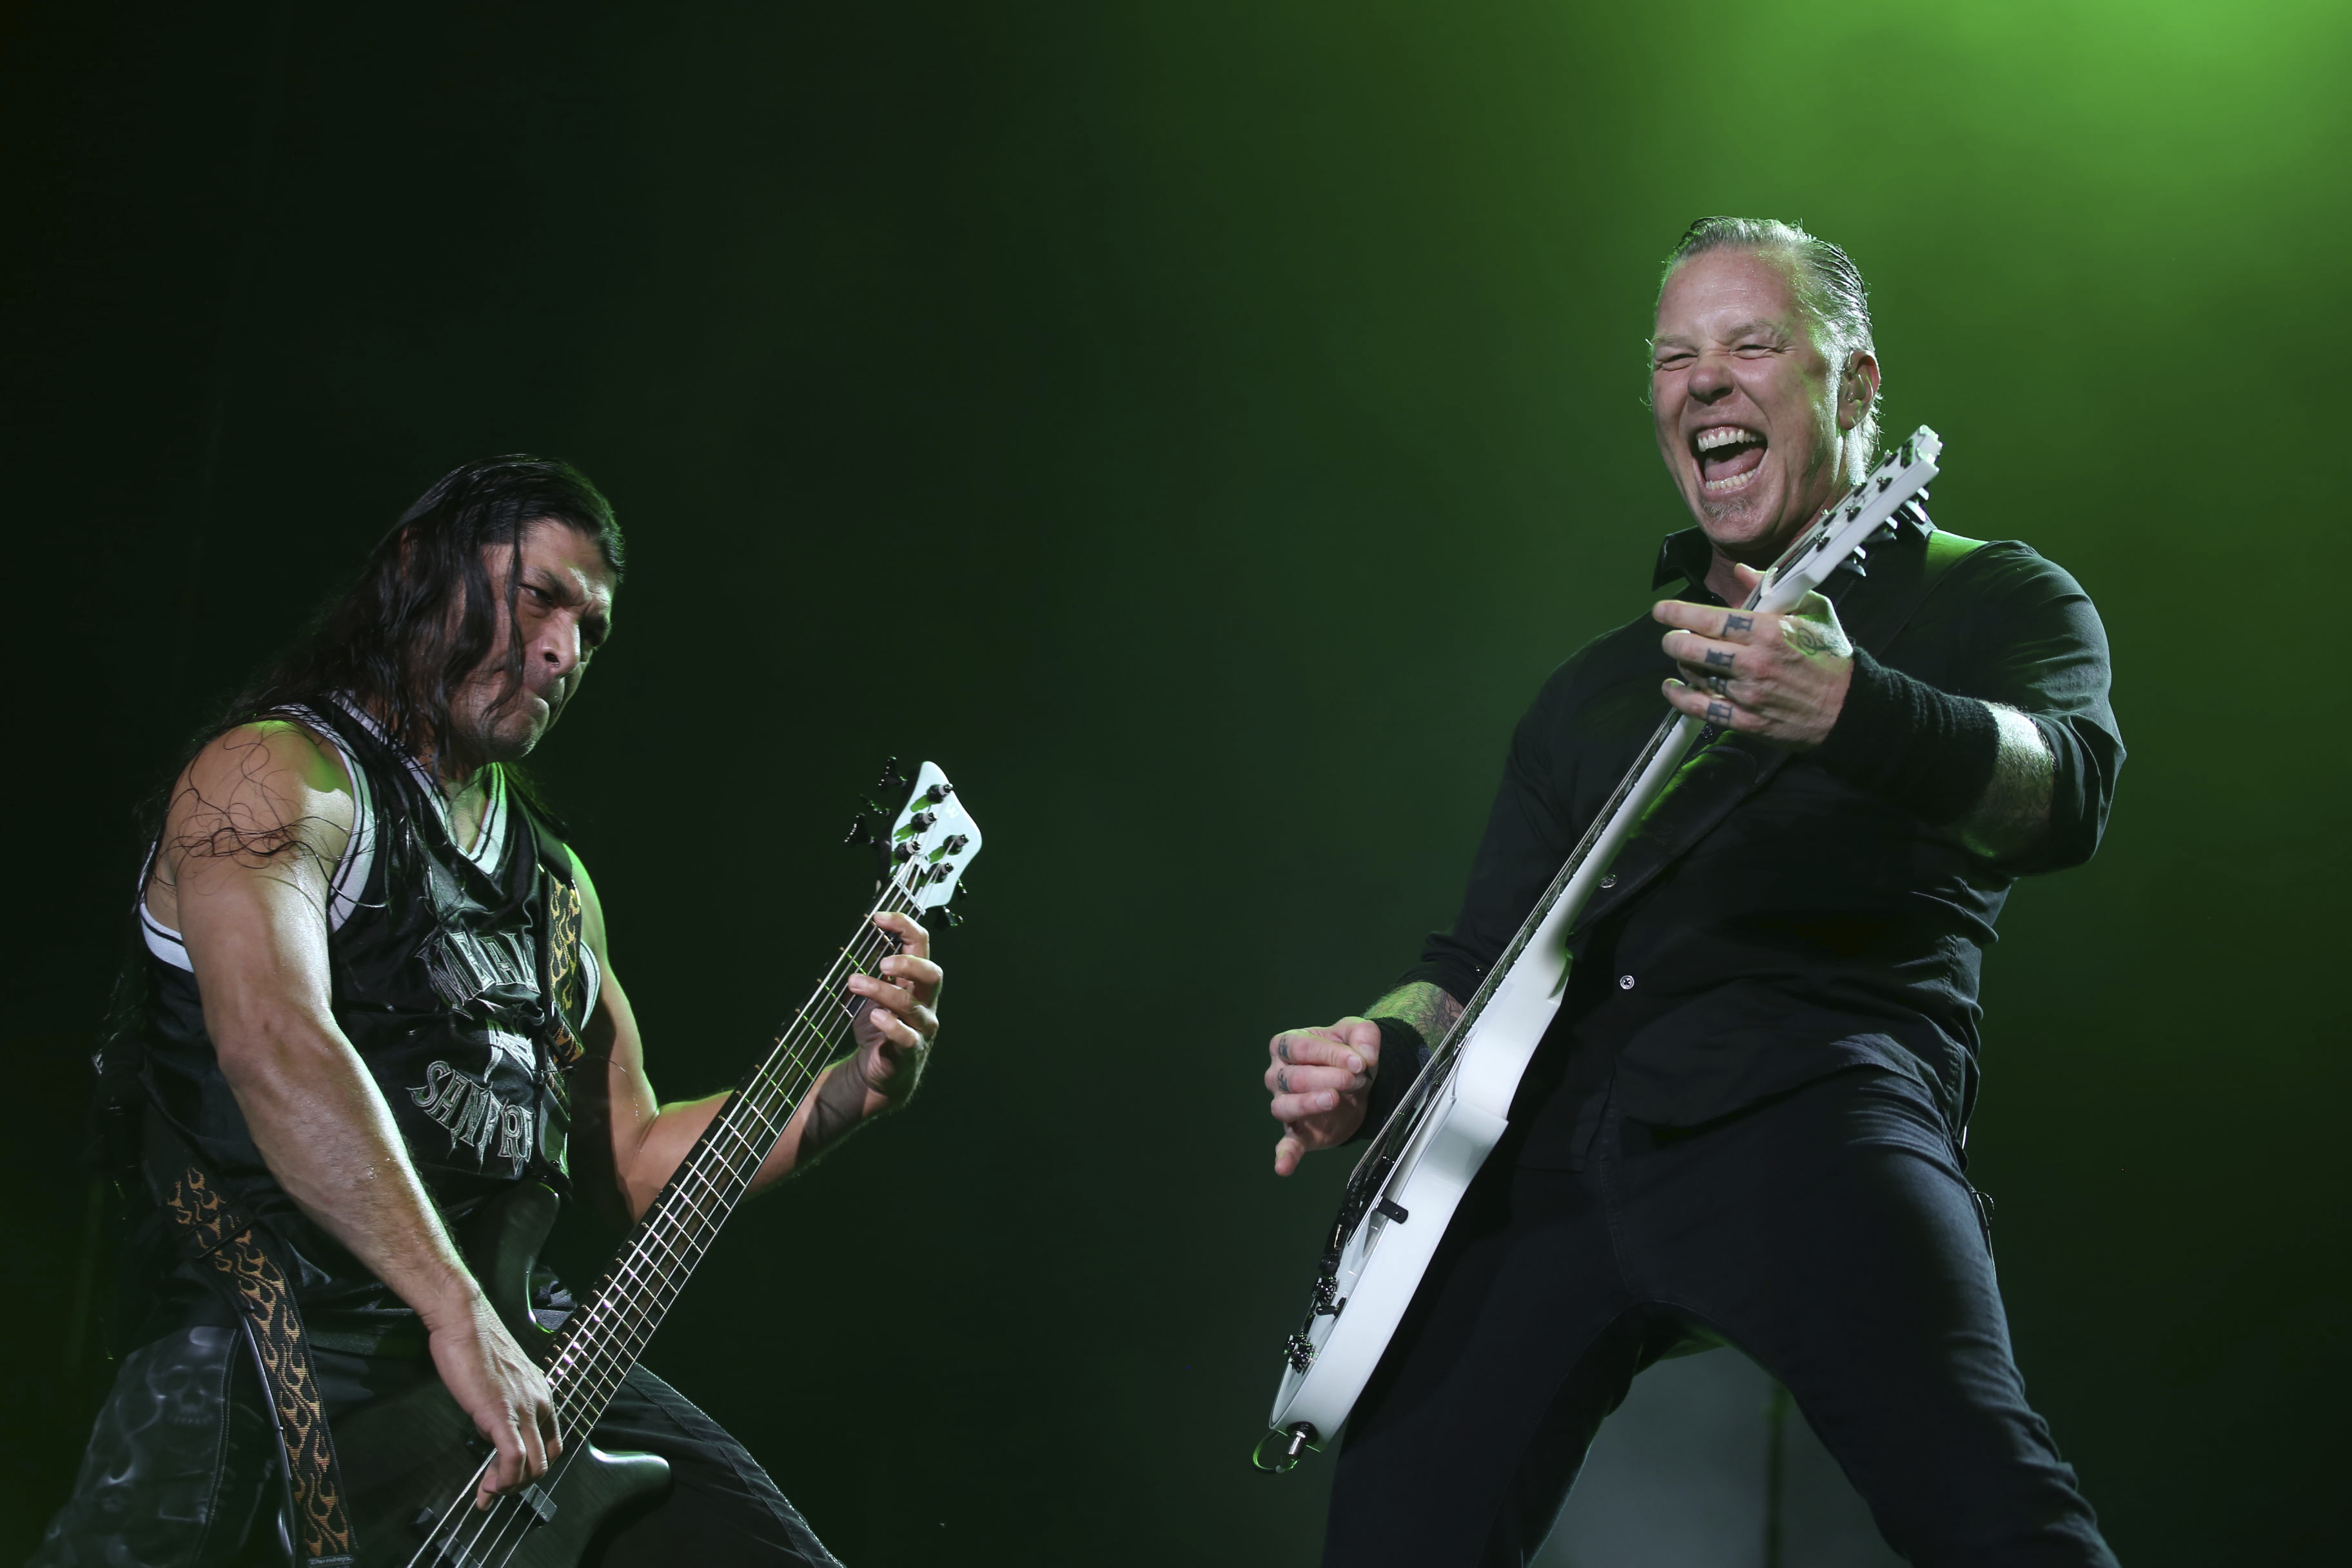 Vocalist and Guitarist James Hetfield (R) and bassist Robert Trujillo (L) perform during a show as part of their Metallica By Request Tour at Estadio Unico de la Plata on March 29, 2014 in La Plata, Argentina.